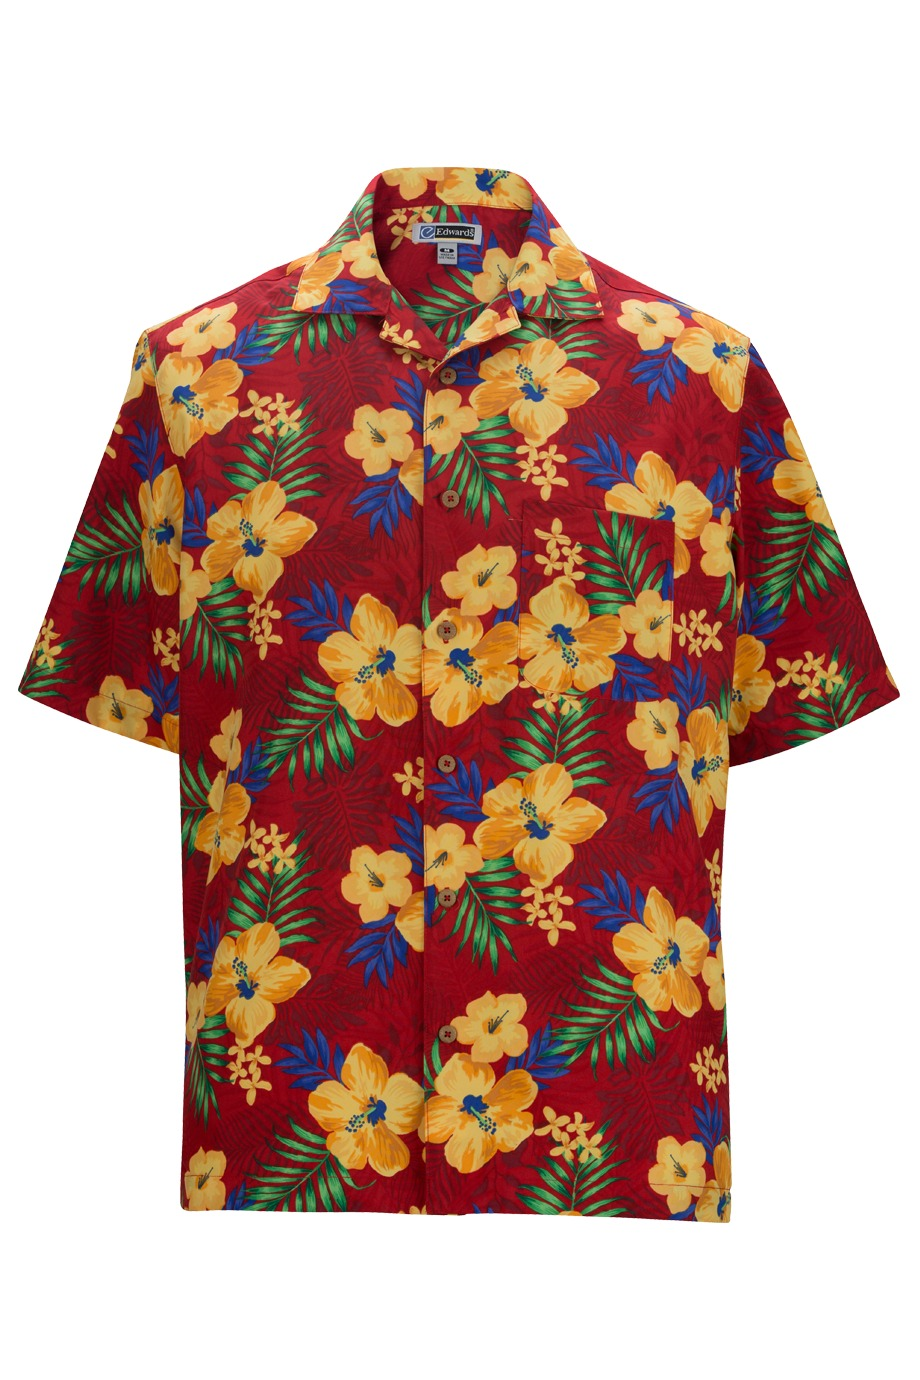 Edwards Garment 1035 - Tropical Hibiscus Camp Shirt